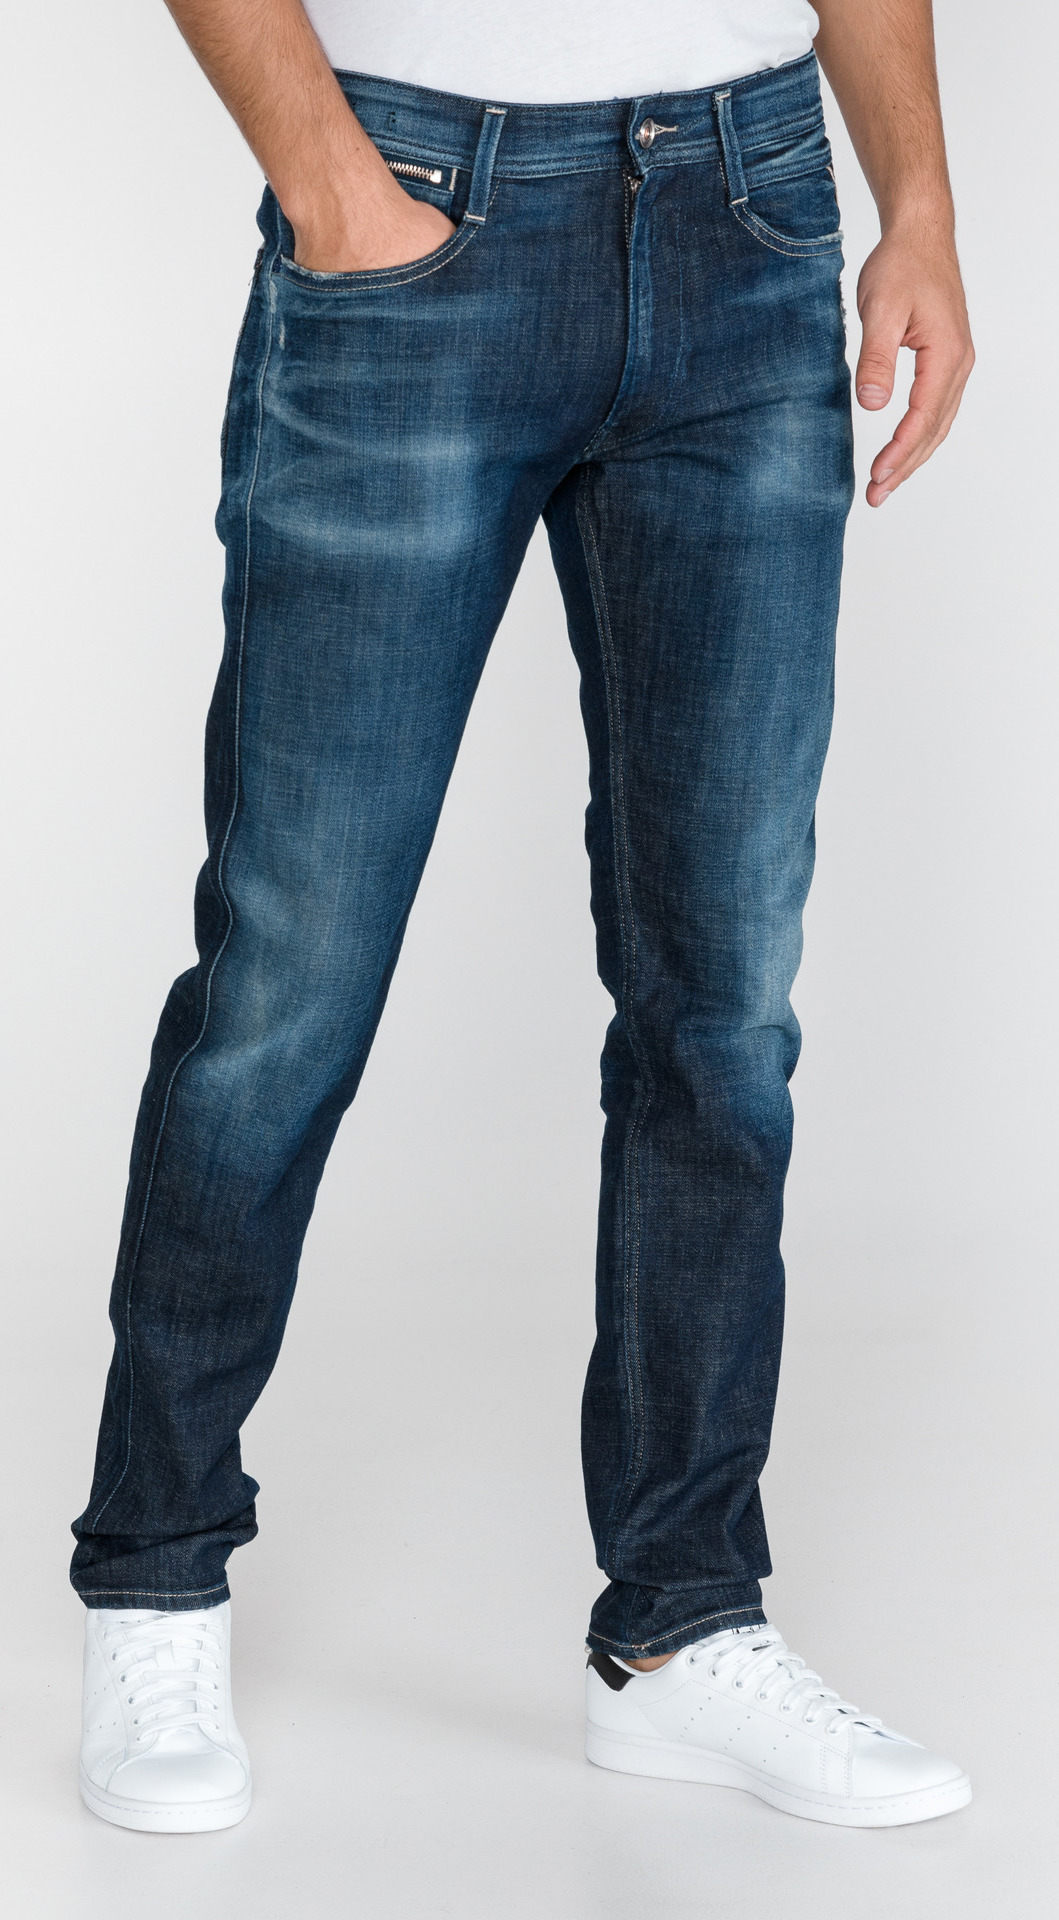 Anbass Ice Blast Jeans Replay